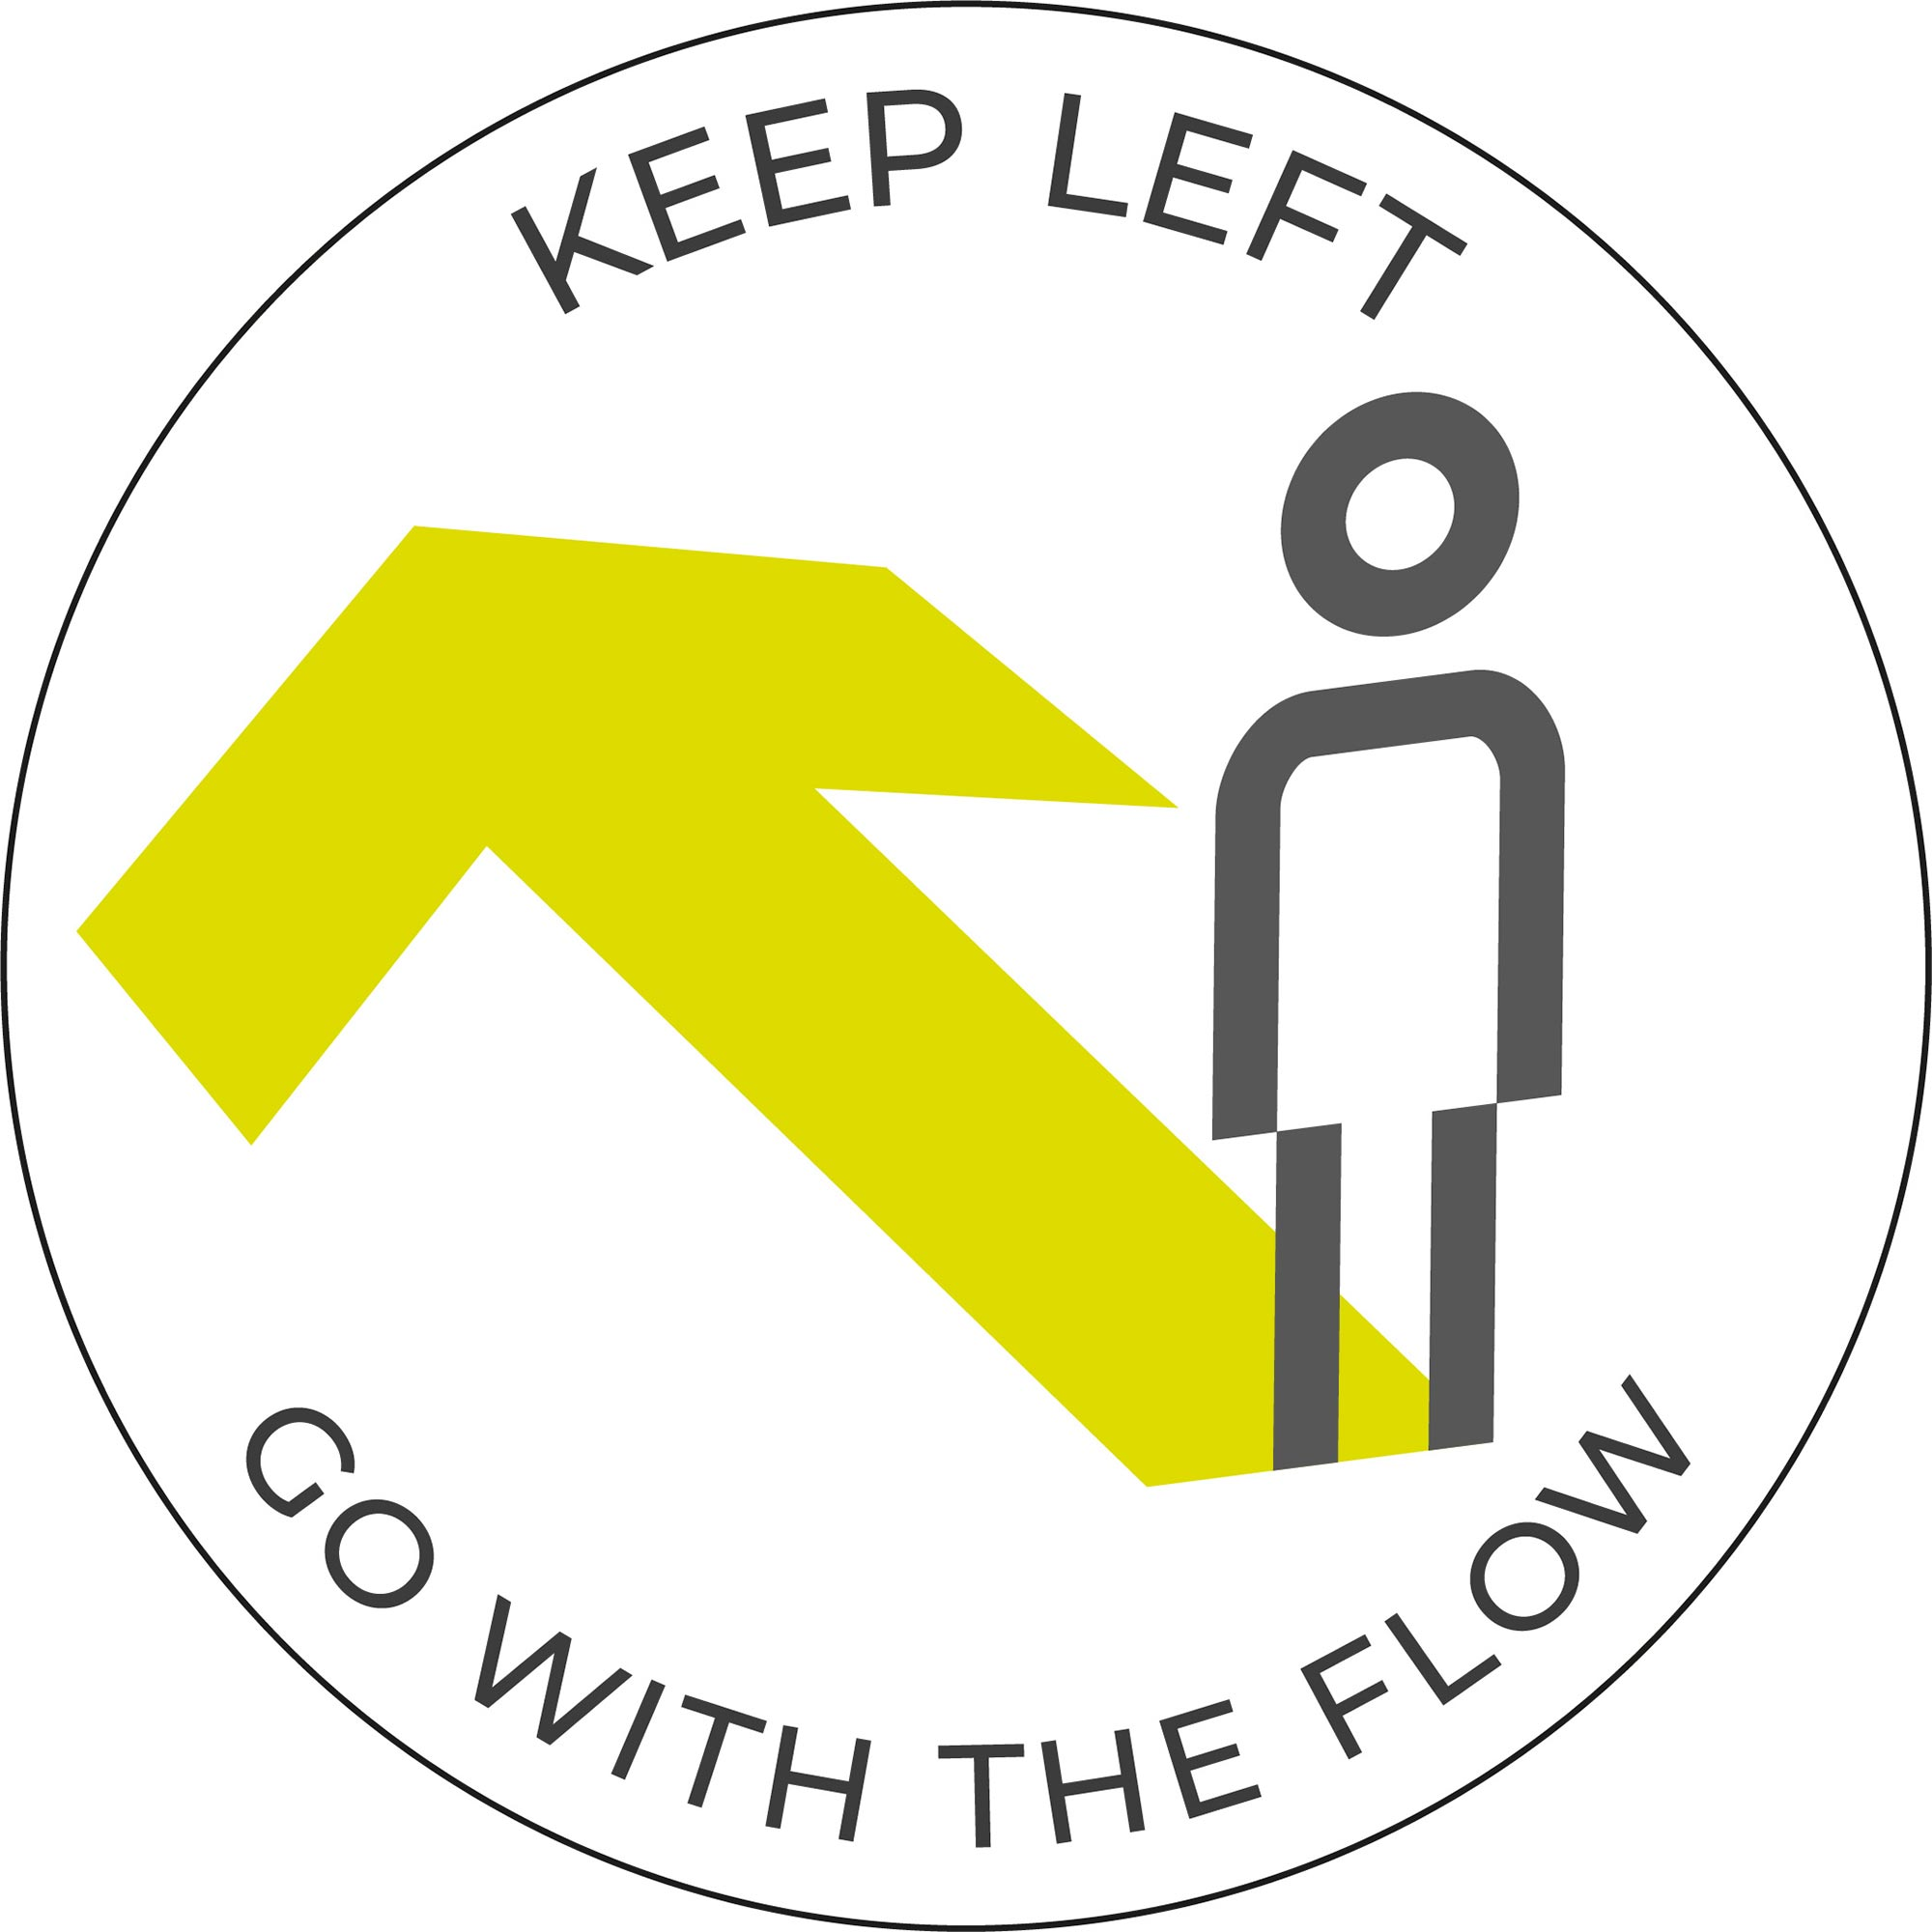 Go with the Flow - White